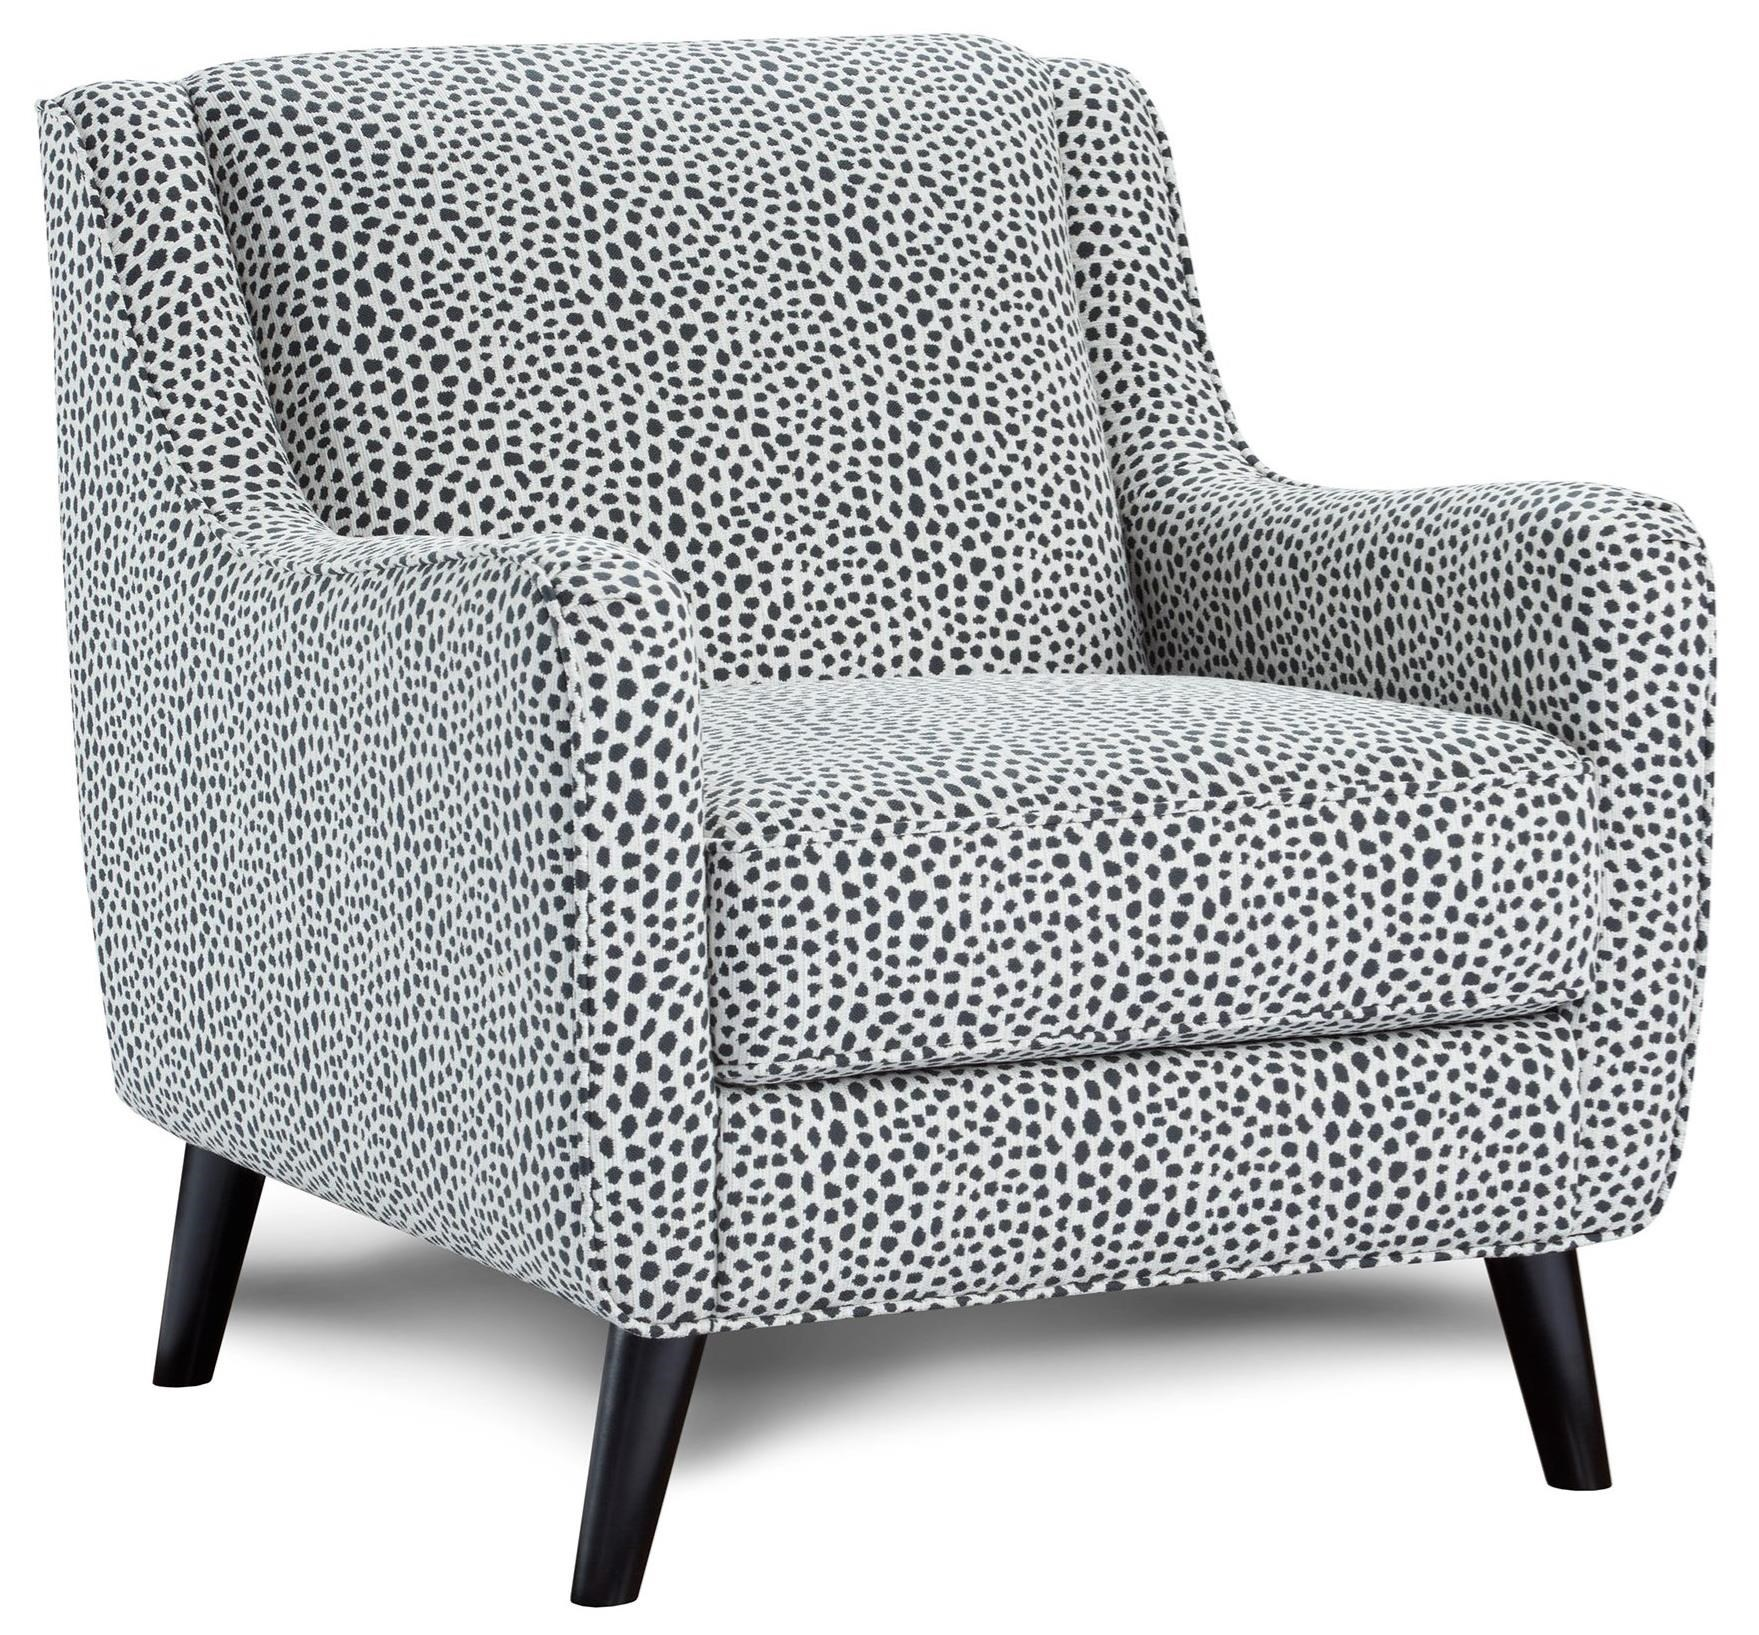 240 Chair by Fusion Furniture at Story & Lee Furniture